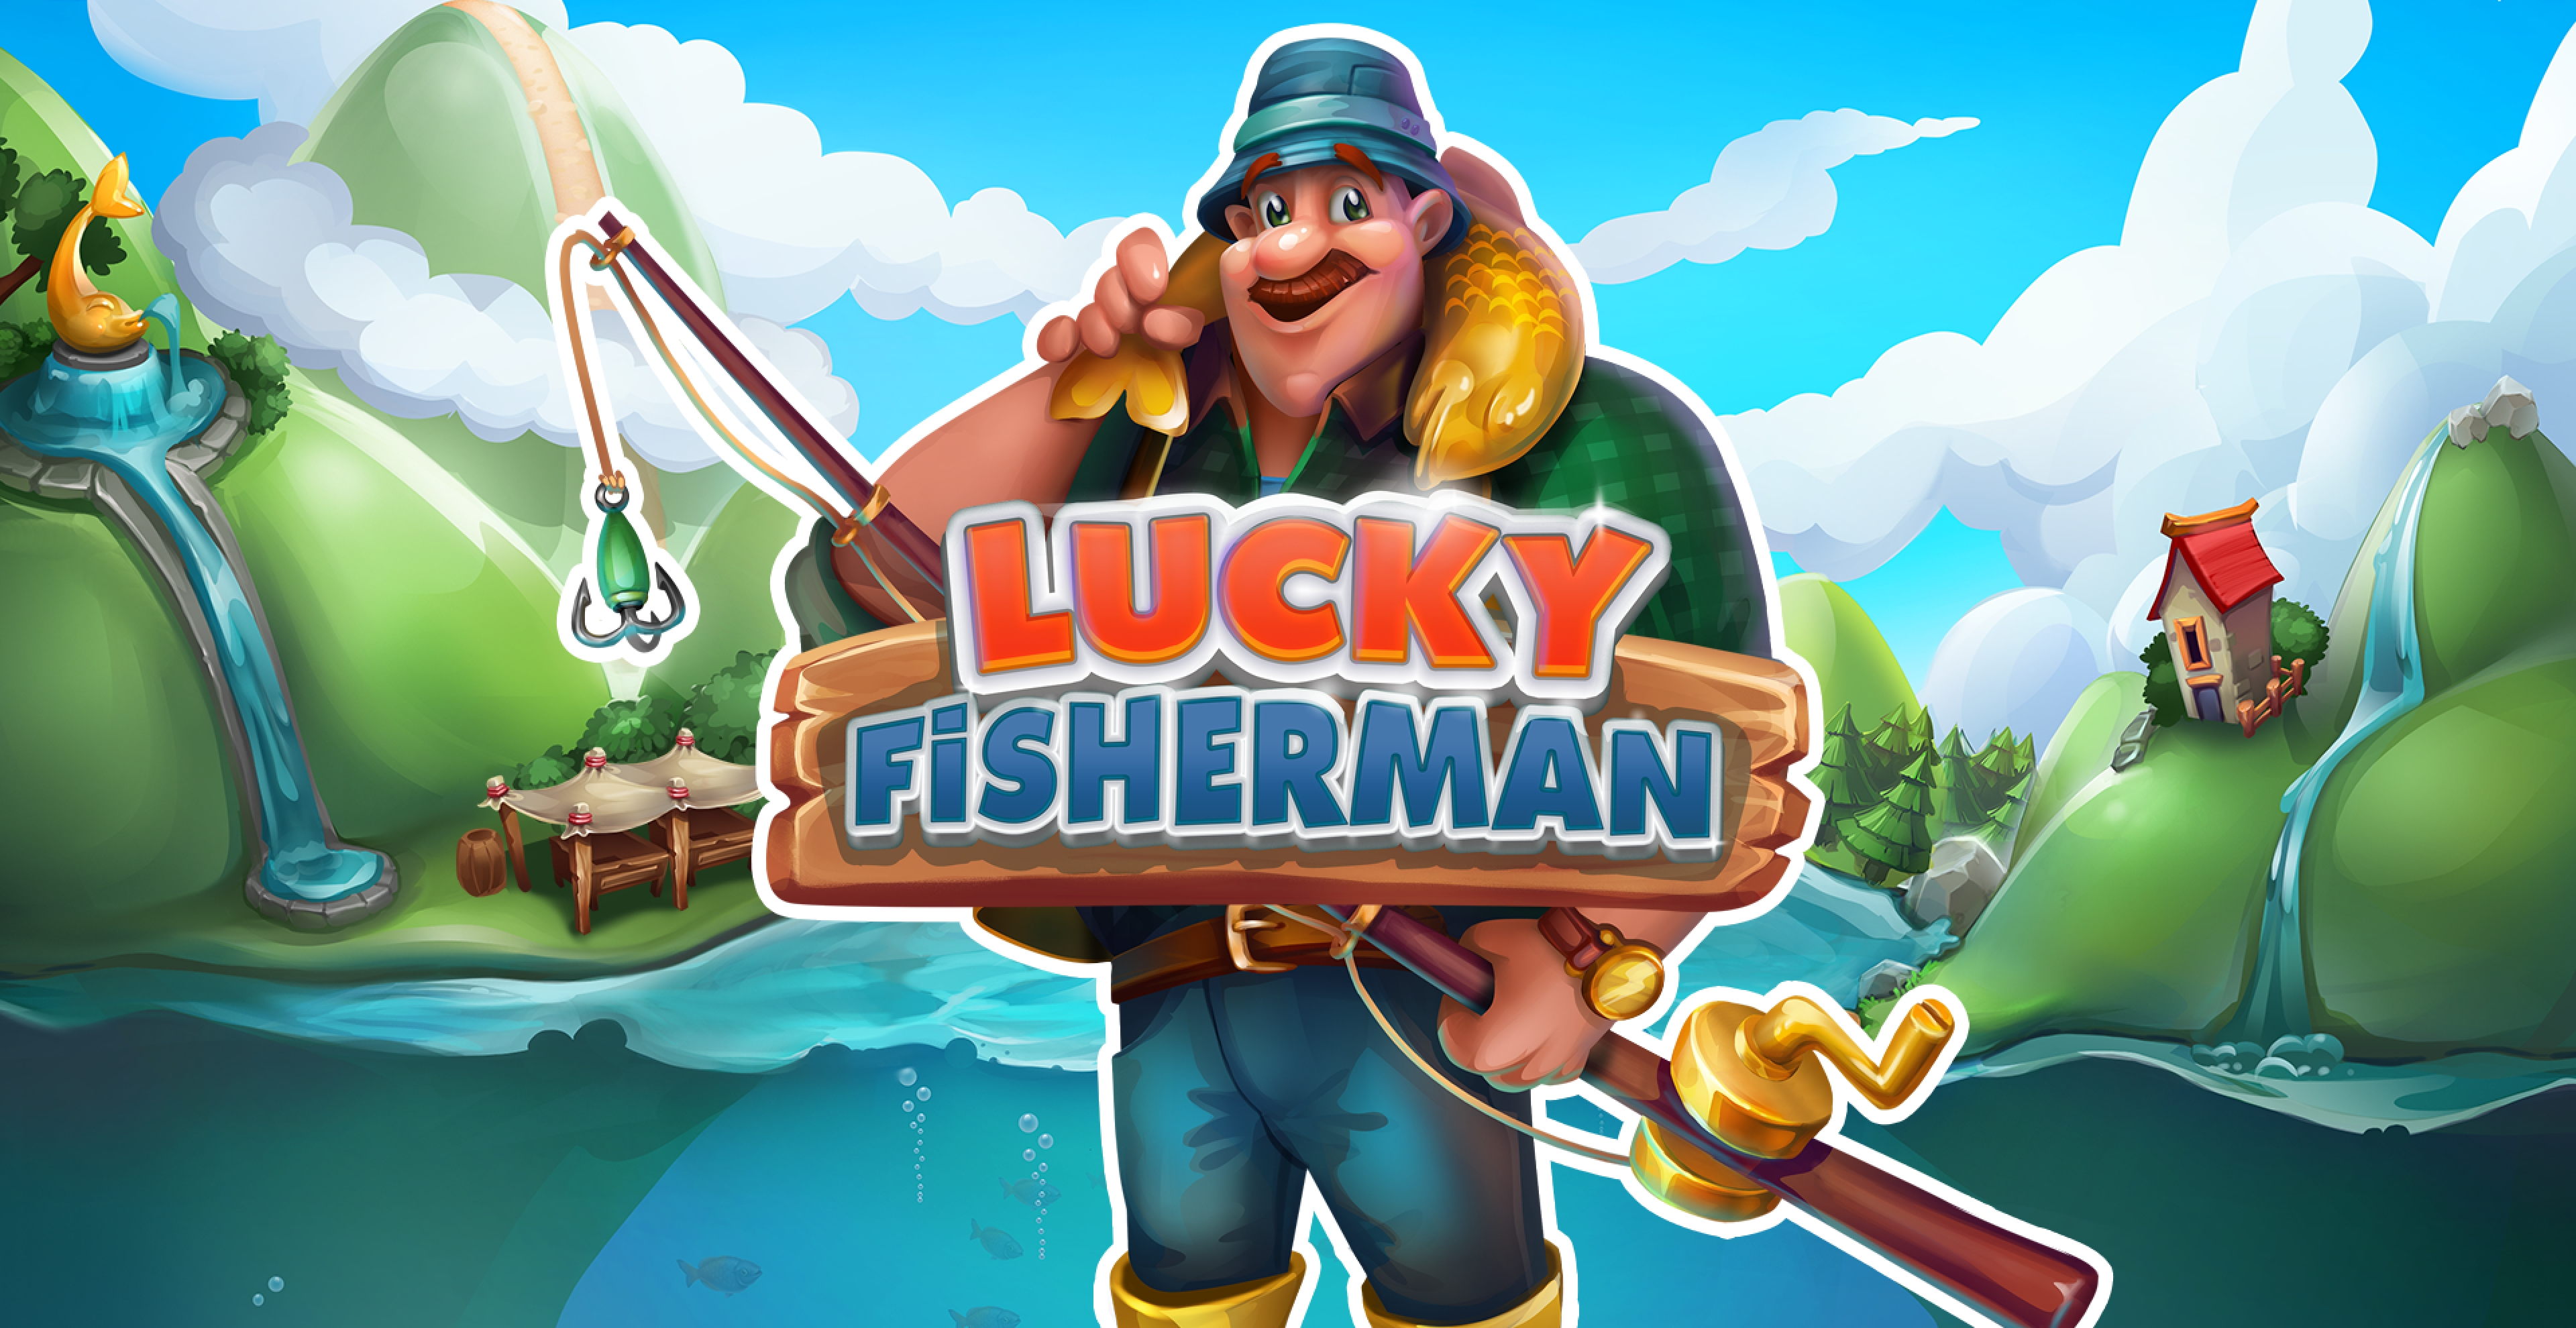 Win Money in Lucky Fisherman Free Slot Game by Skywind